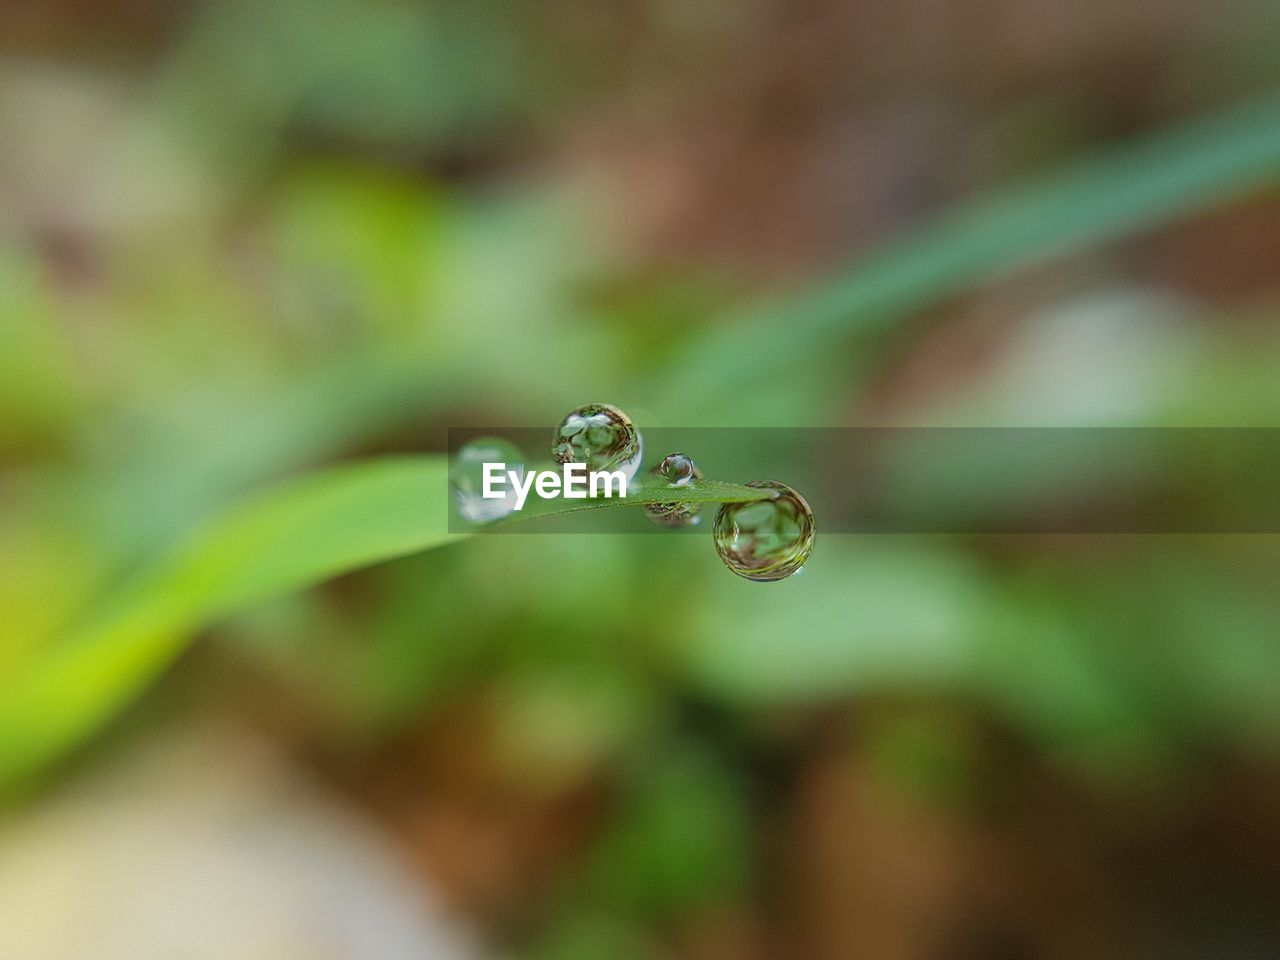 drop, water, nature, growth, focus on foreground, plant, beauty in nature, freshness, wet, purity, fragility, day, leaf, no people, close-up, green color, outdoors, dripping, grass